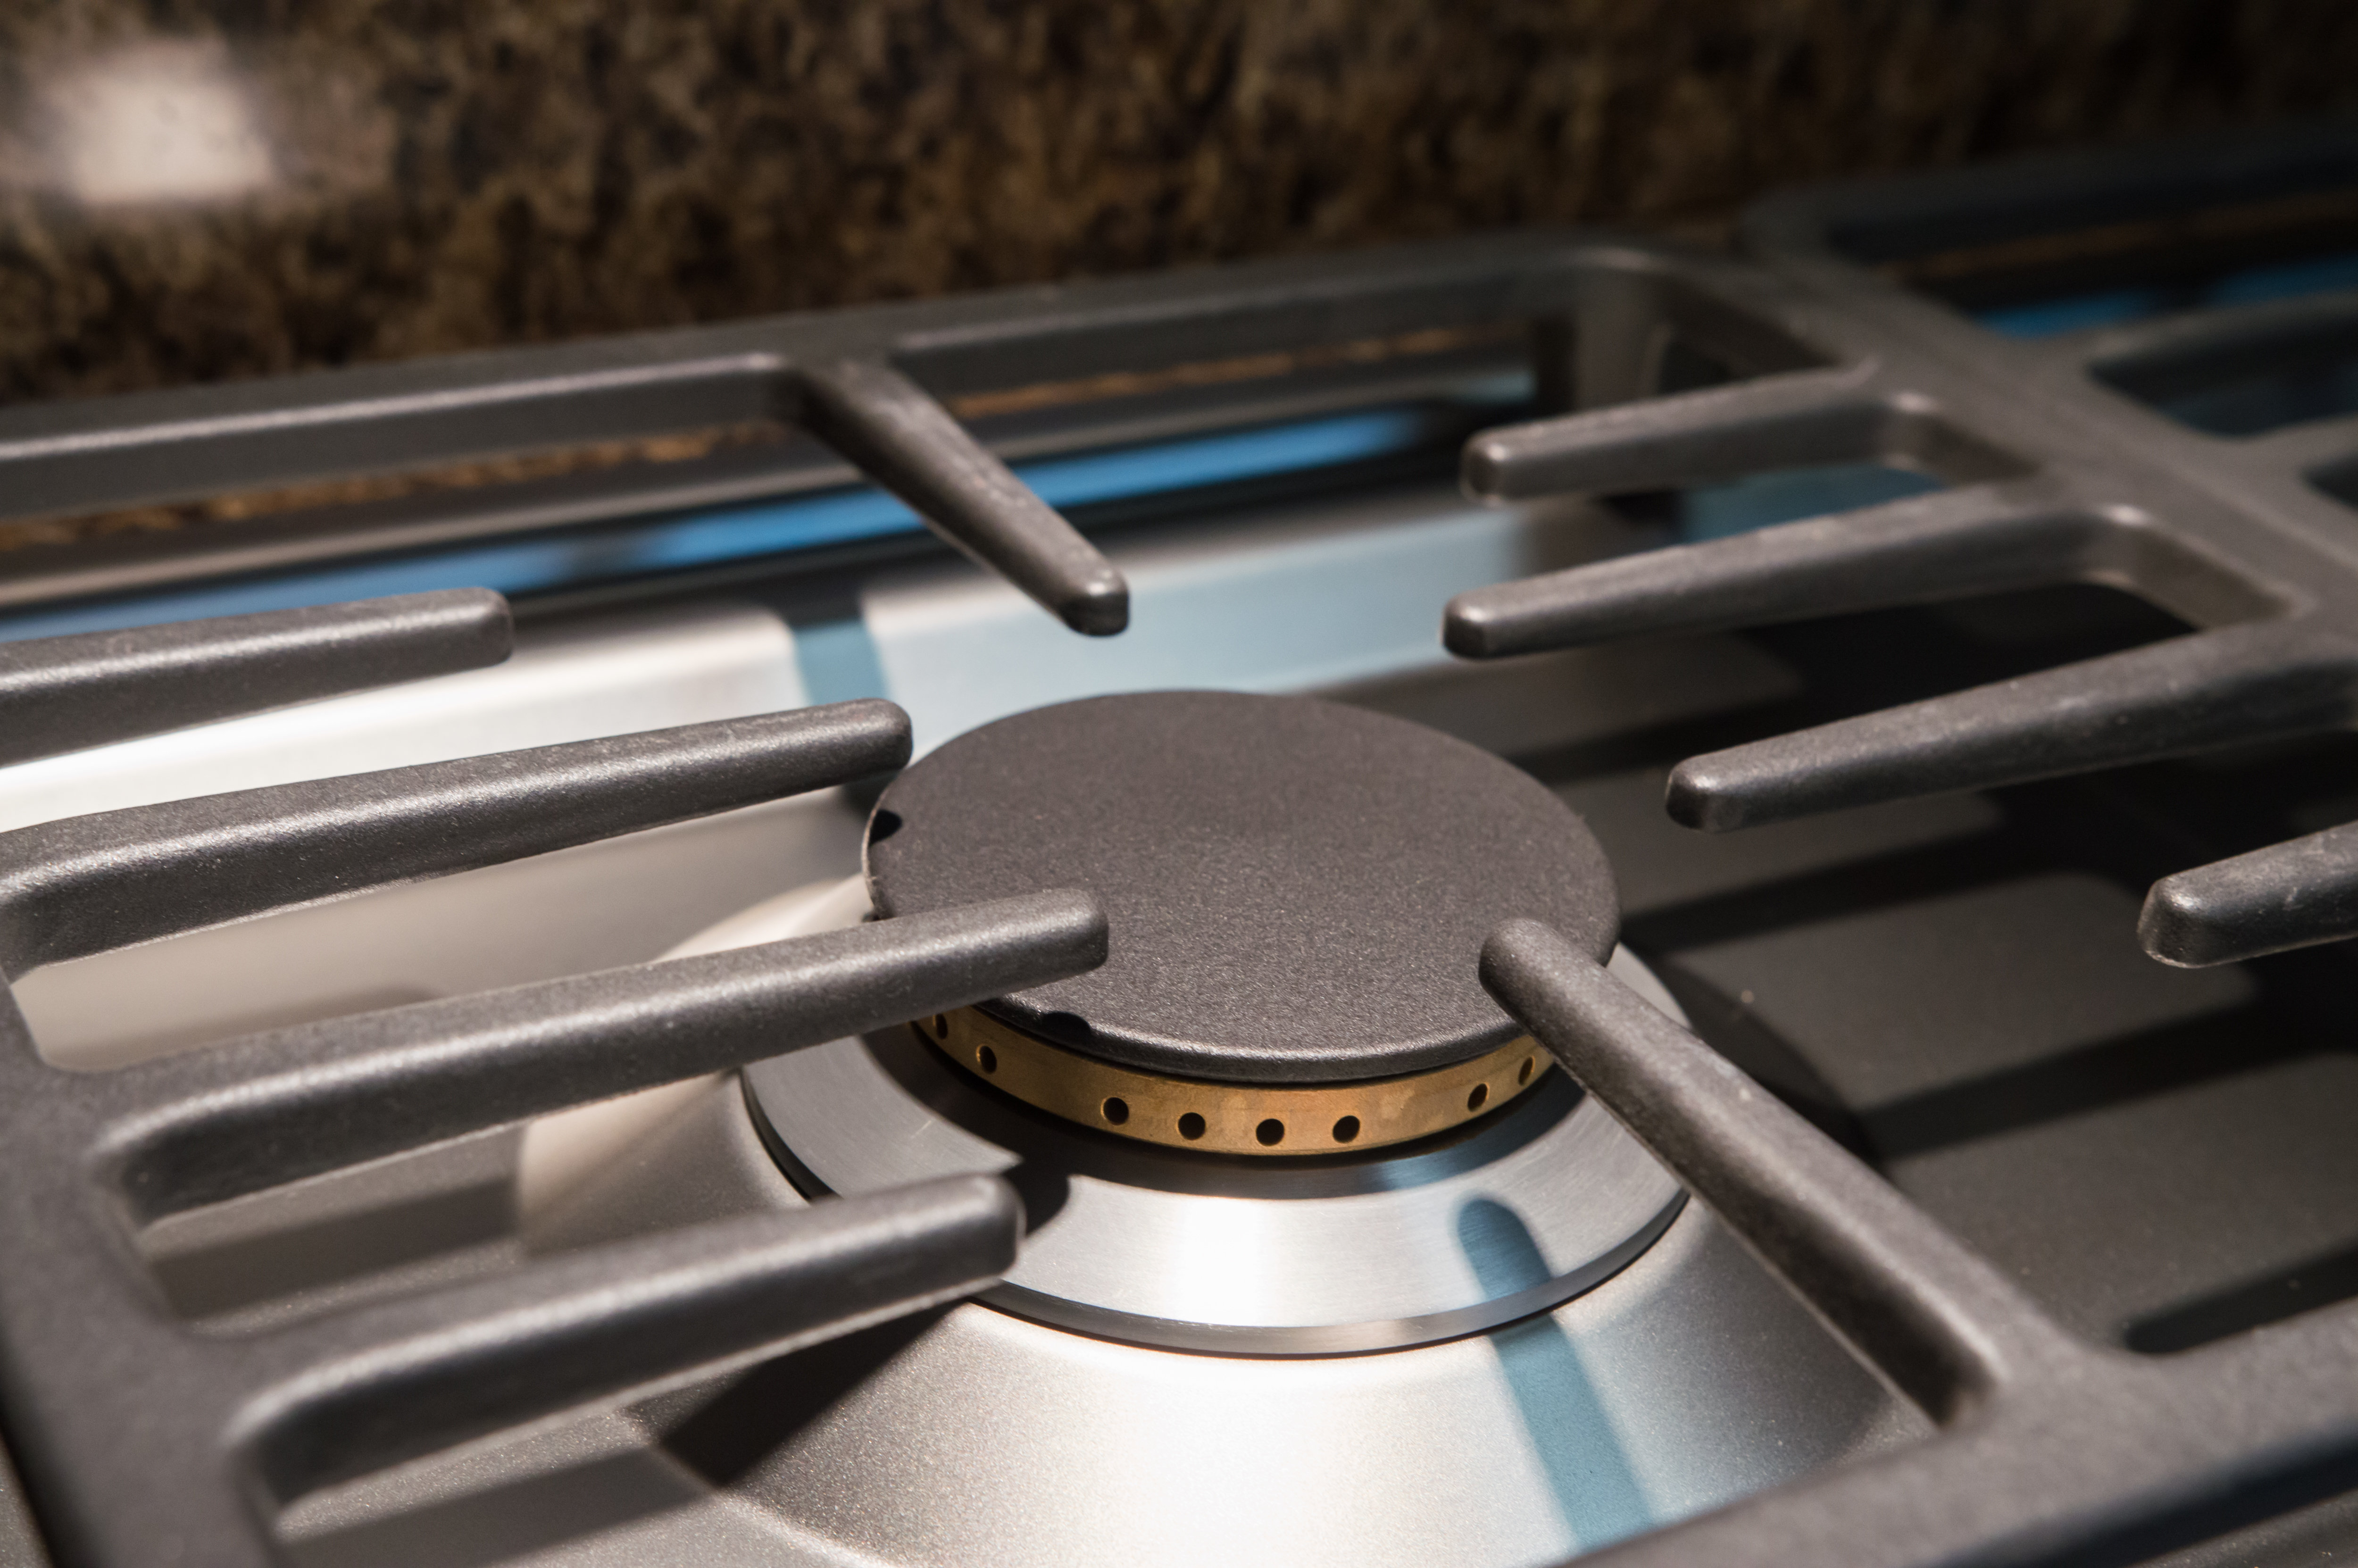 Miele KM 3475 G 36-inch Gas Cooktop Review - Reviewed.com Luxury Home